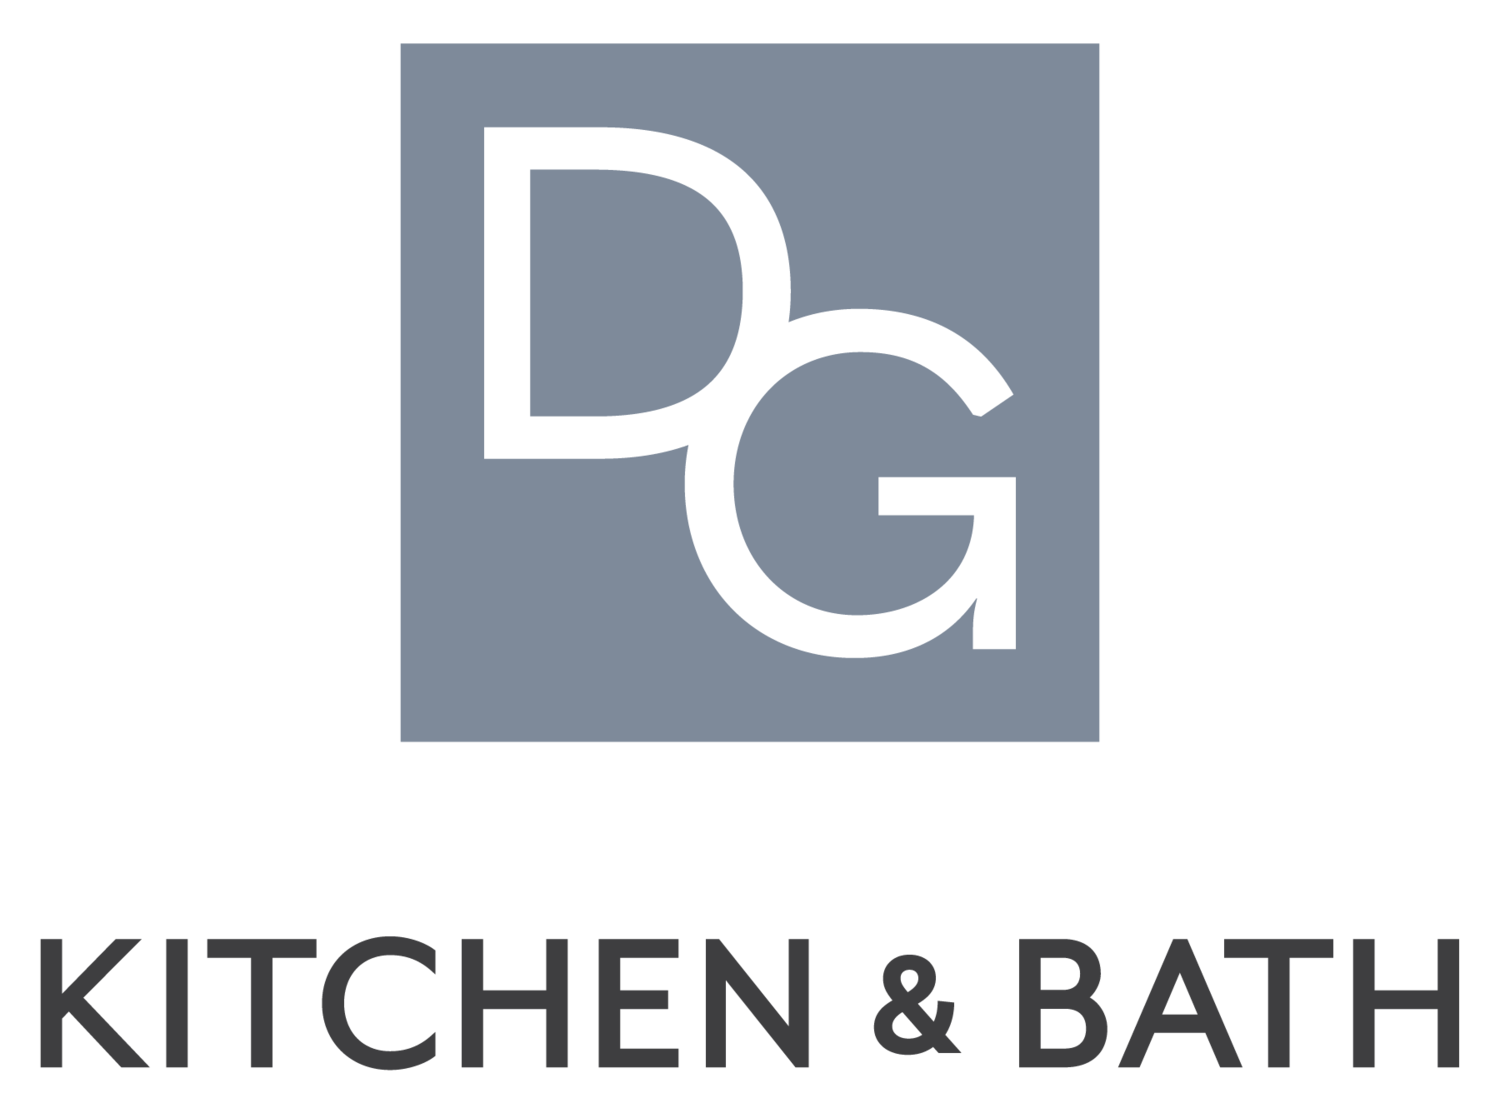 DG Kitchen & Bath